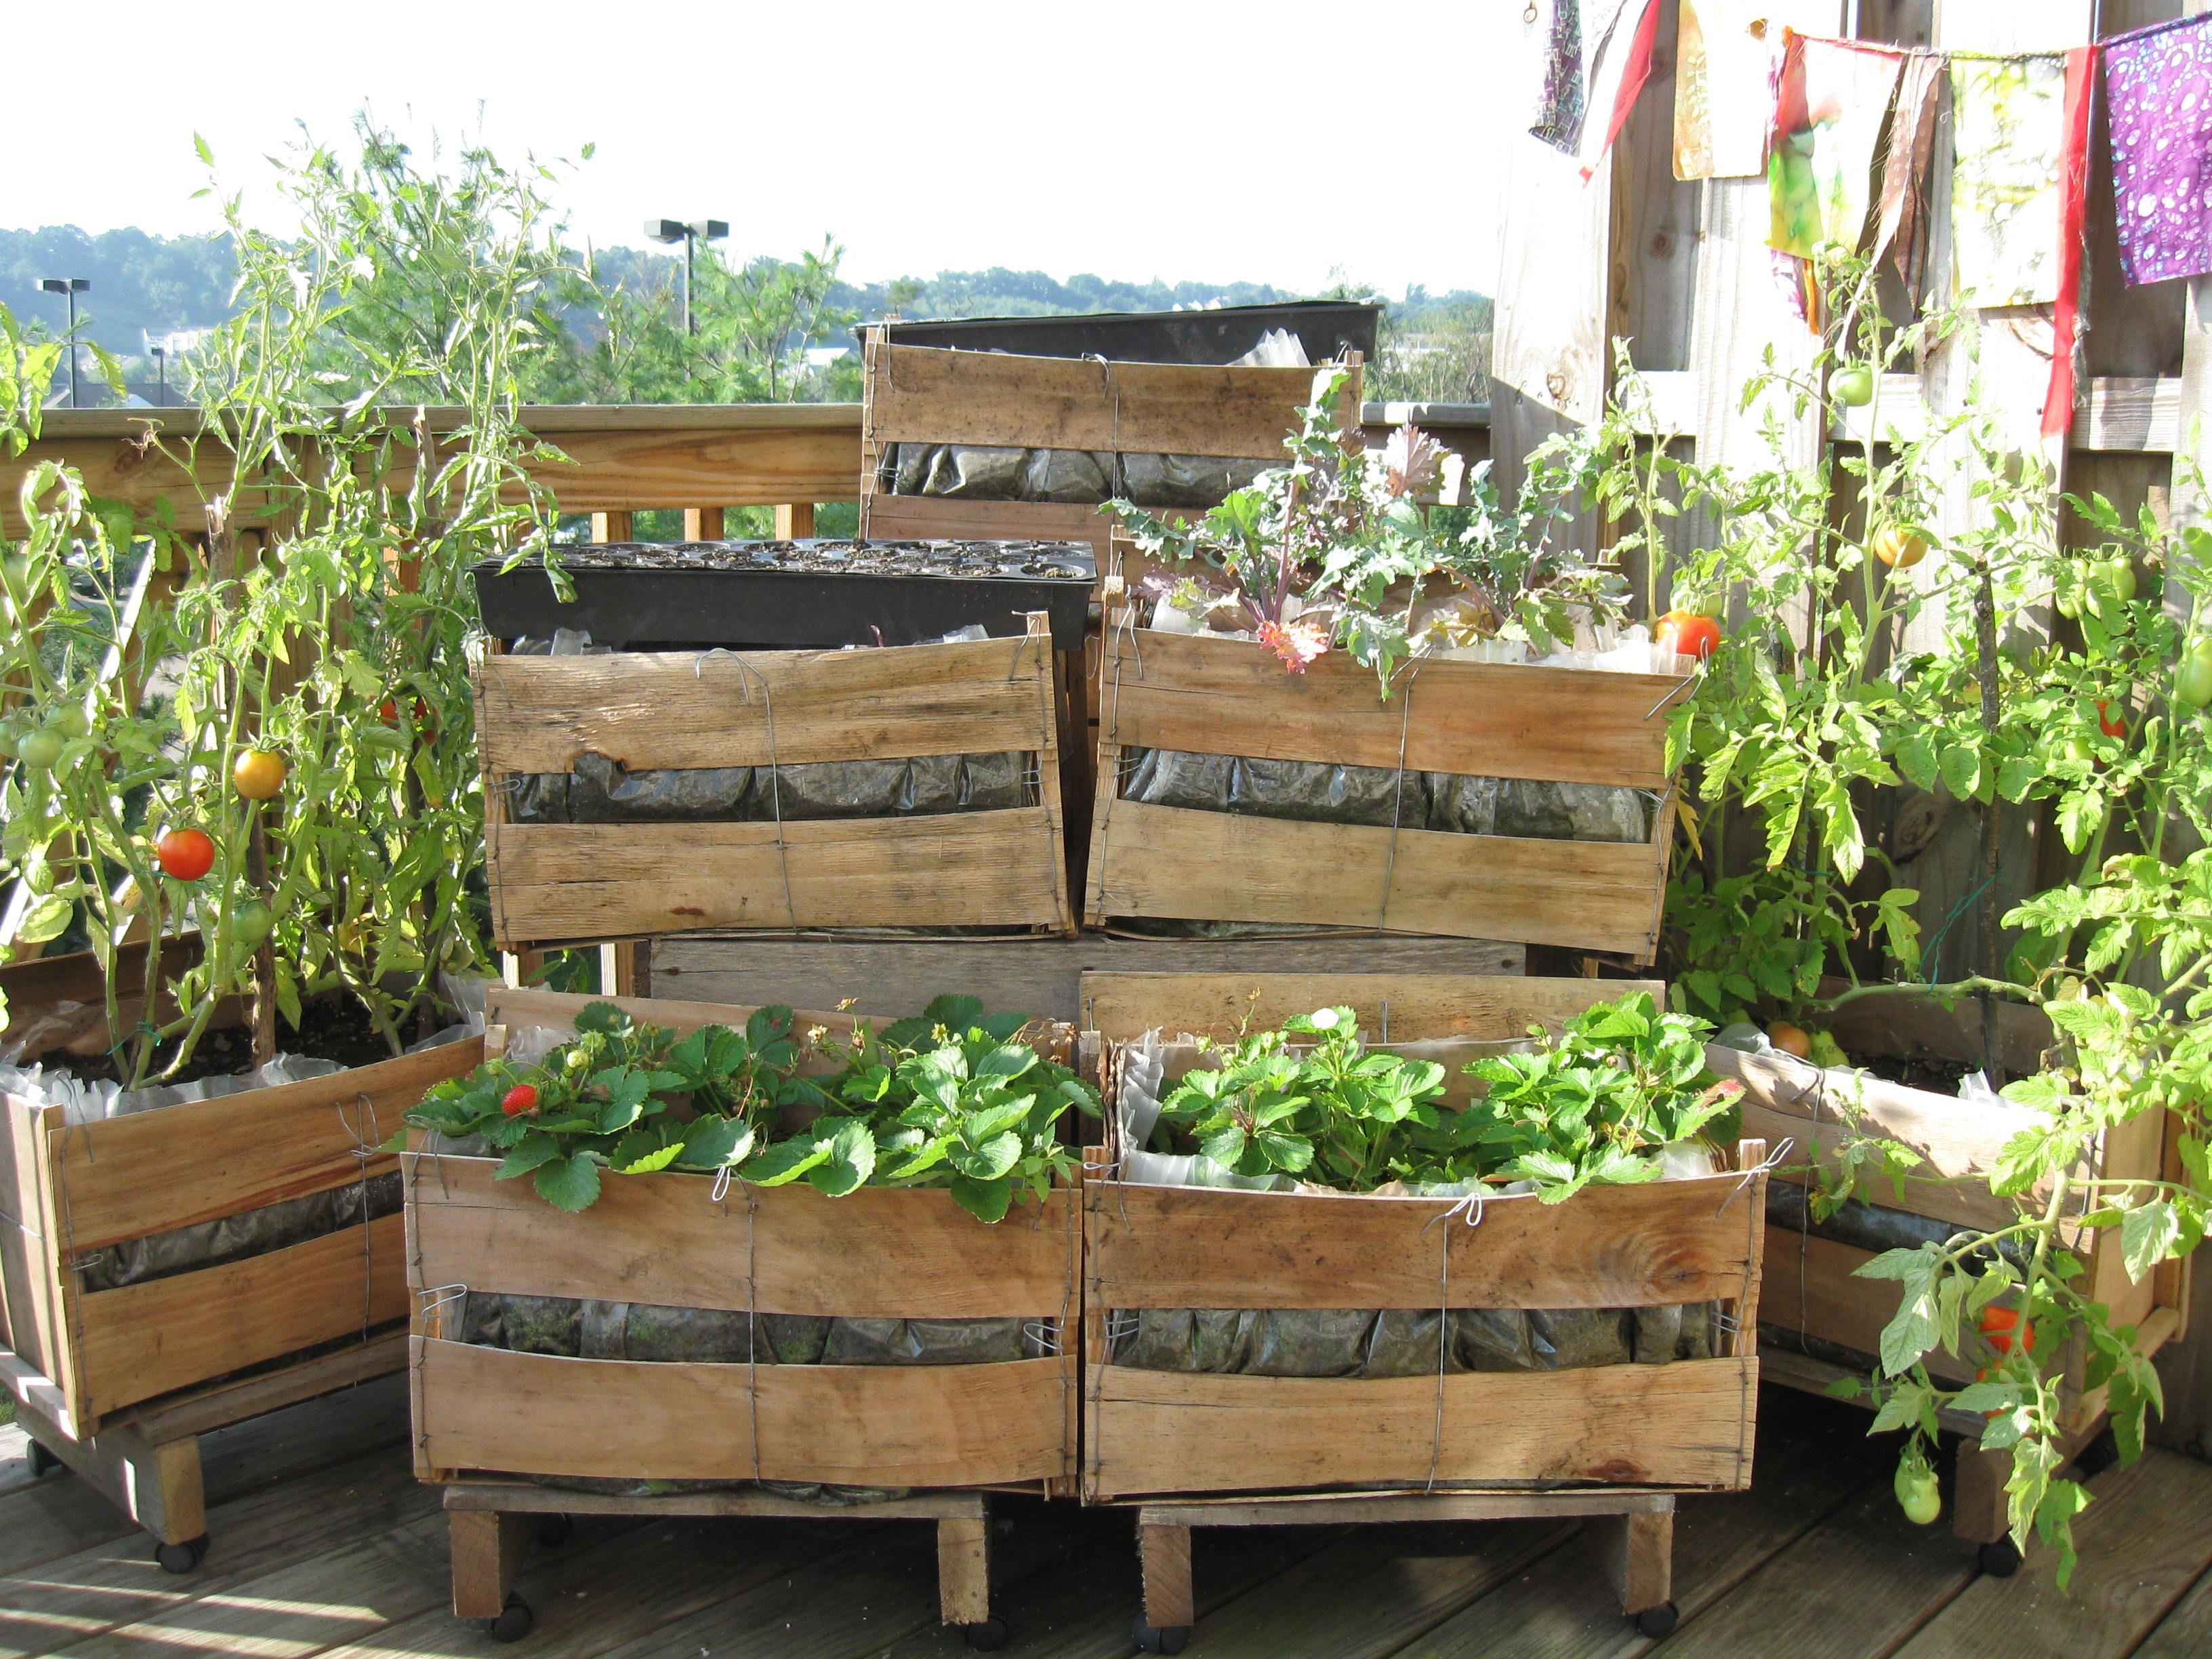 Diy Free Planters Wood Crates In Which The Grocery Stores Receive Their Corn On The Cob And Lined With Plastic P Crate Crafts Outdoor Landscaping Small Farm